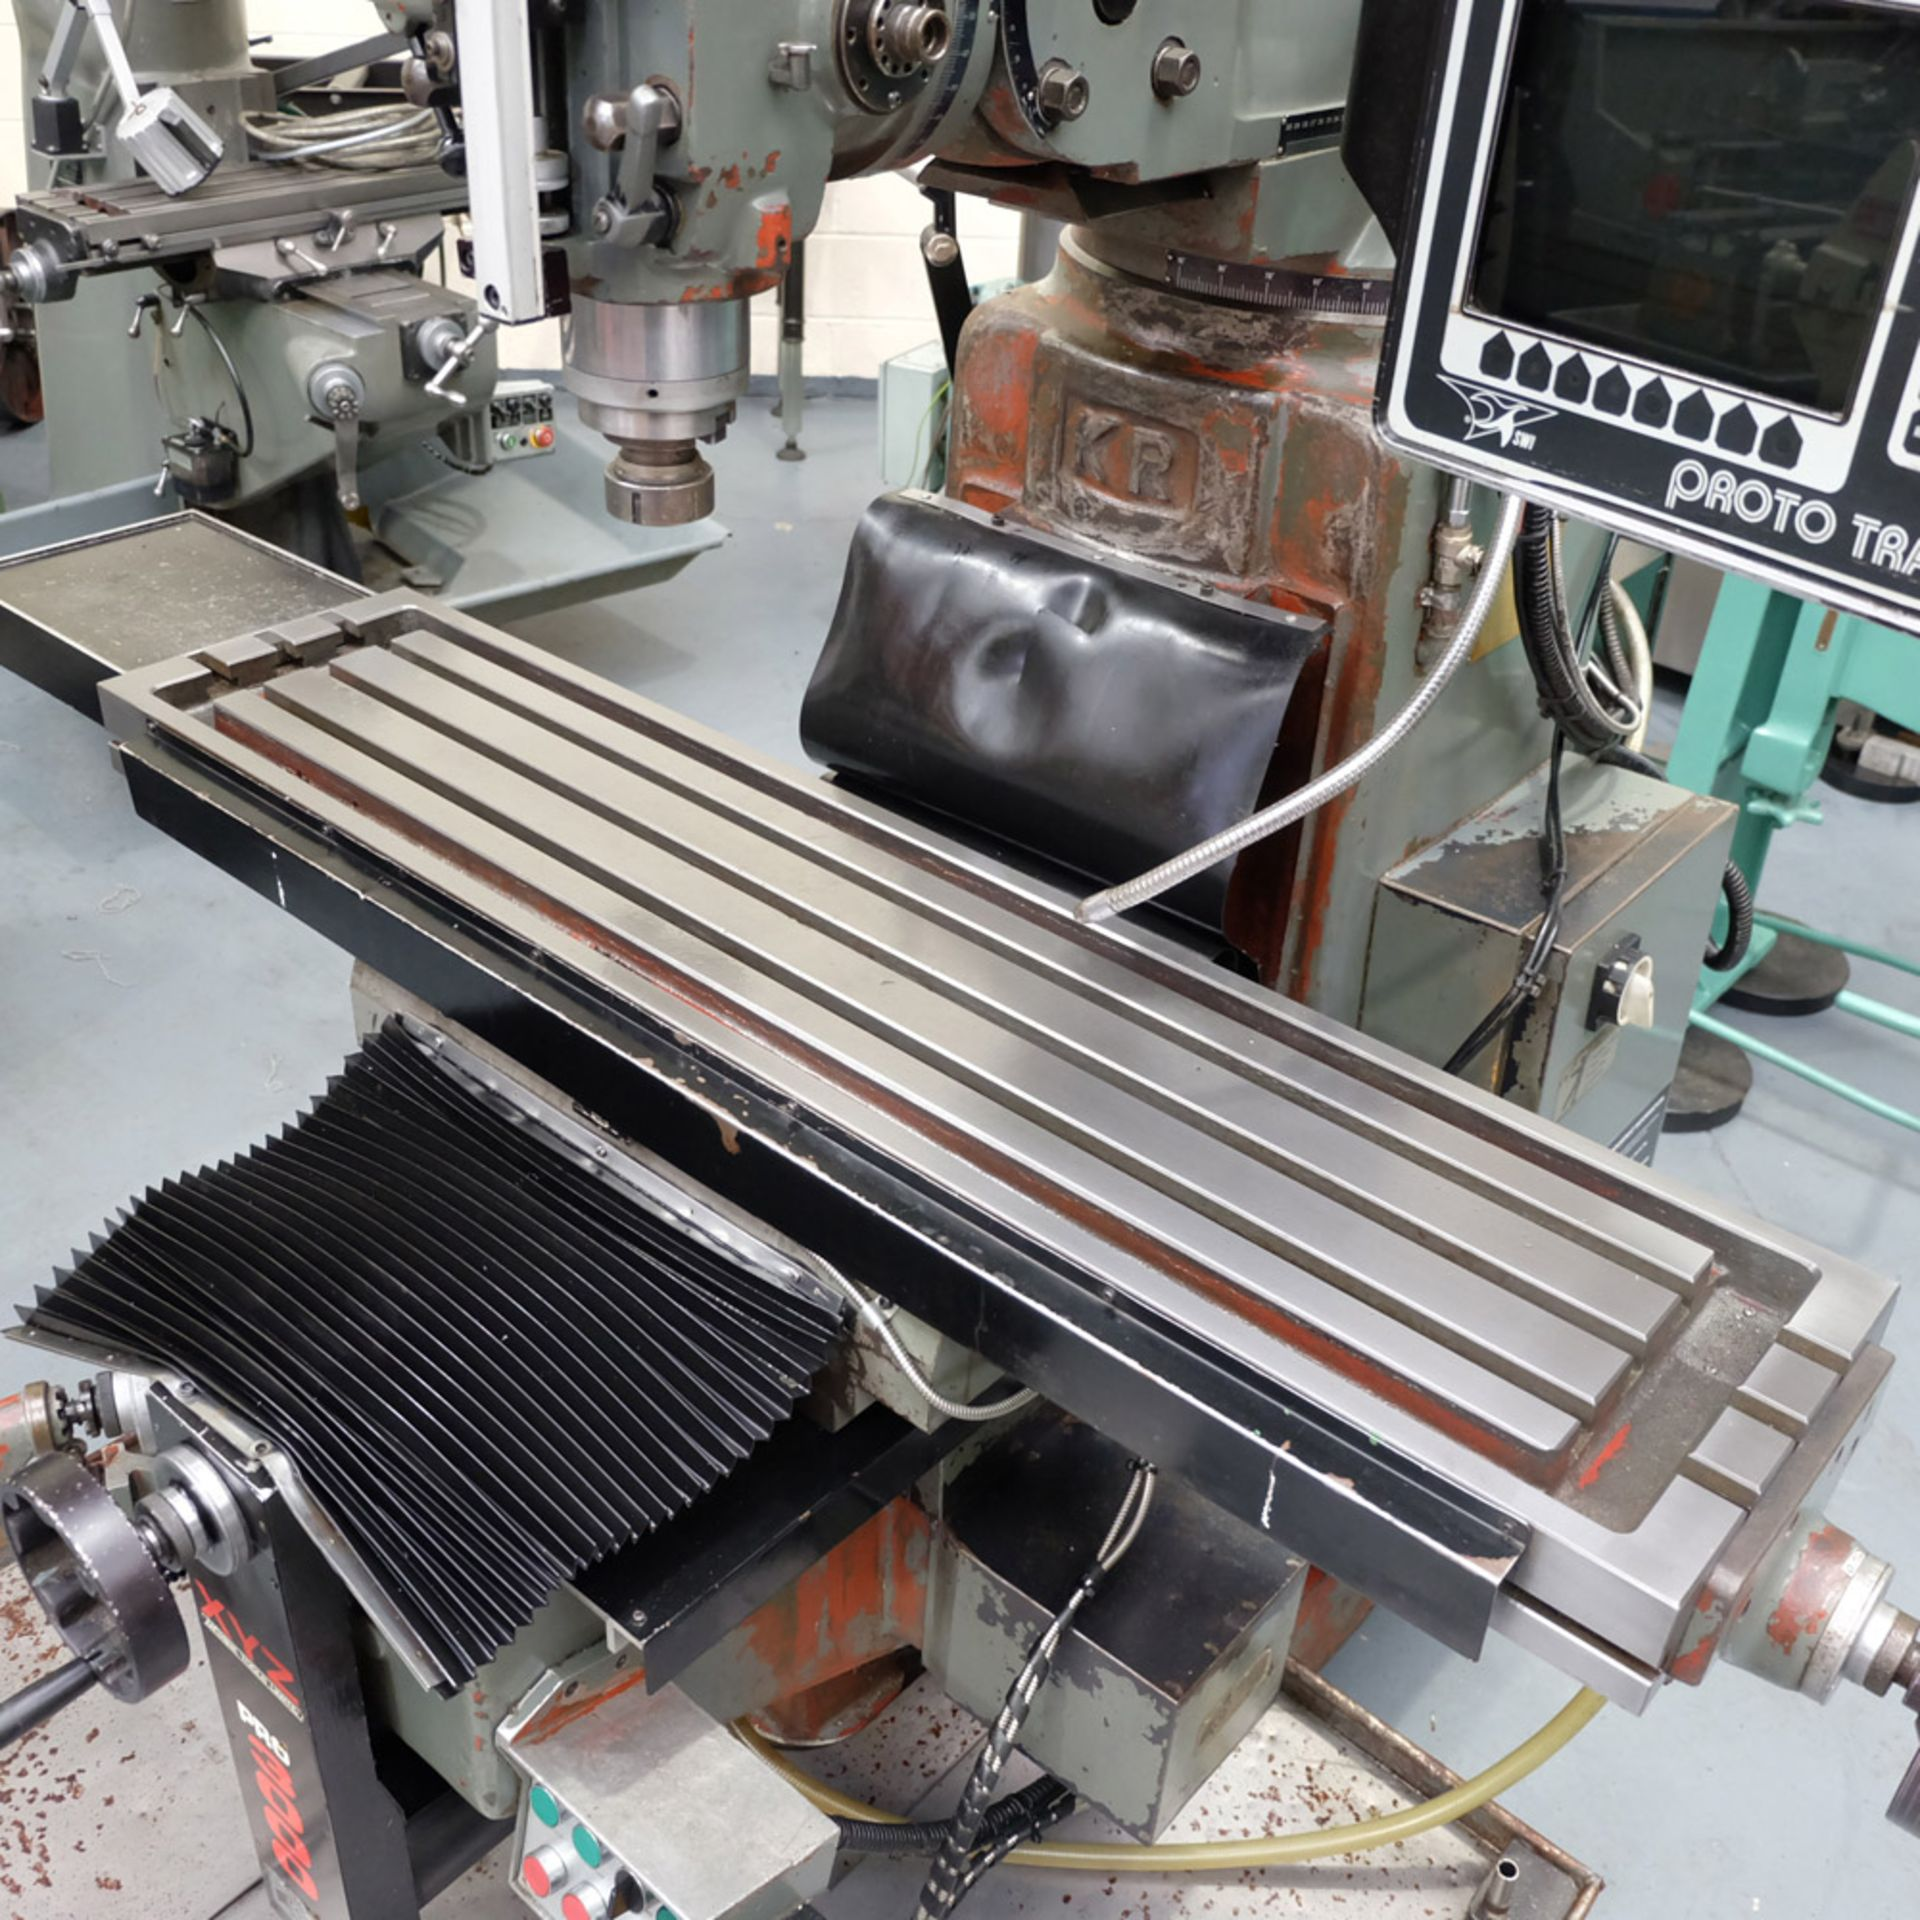 XYZ PRO 3000 Two Axis CNC Milling Machine.ProtoTrak MX2 Two Axis Programmable Control. - Image 6 of 9